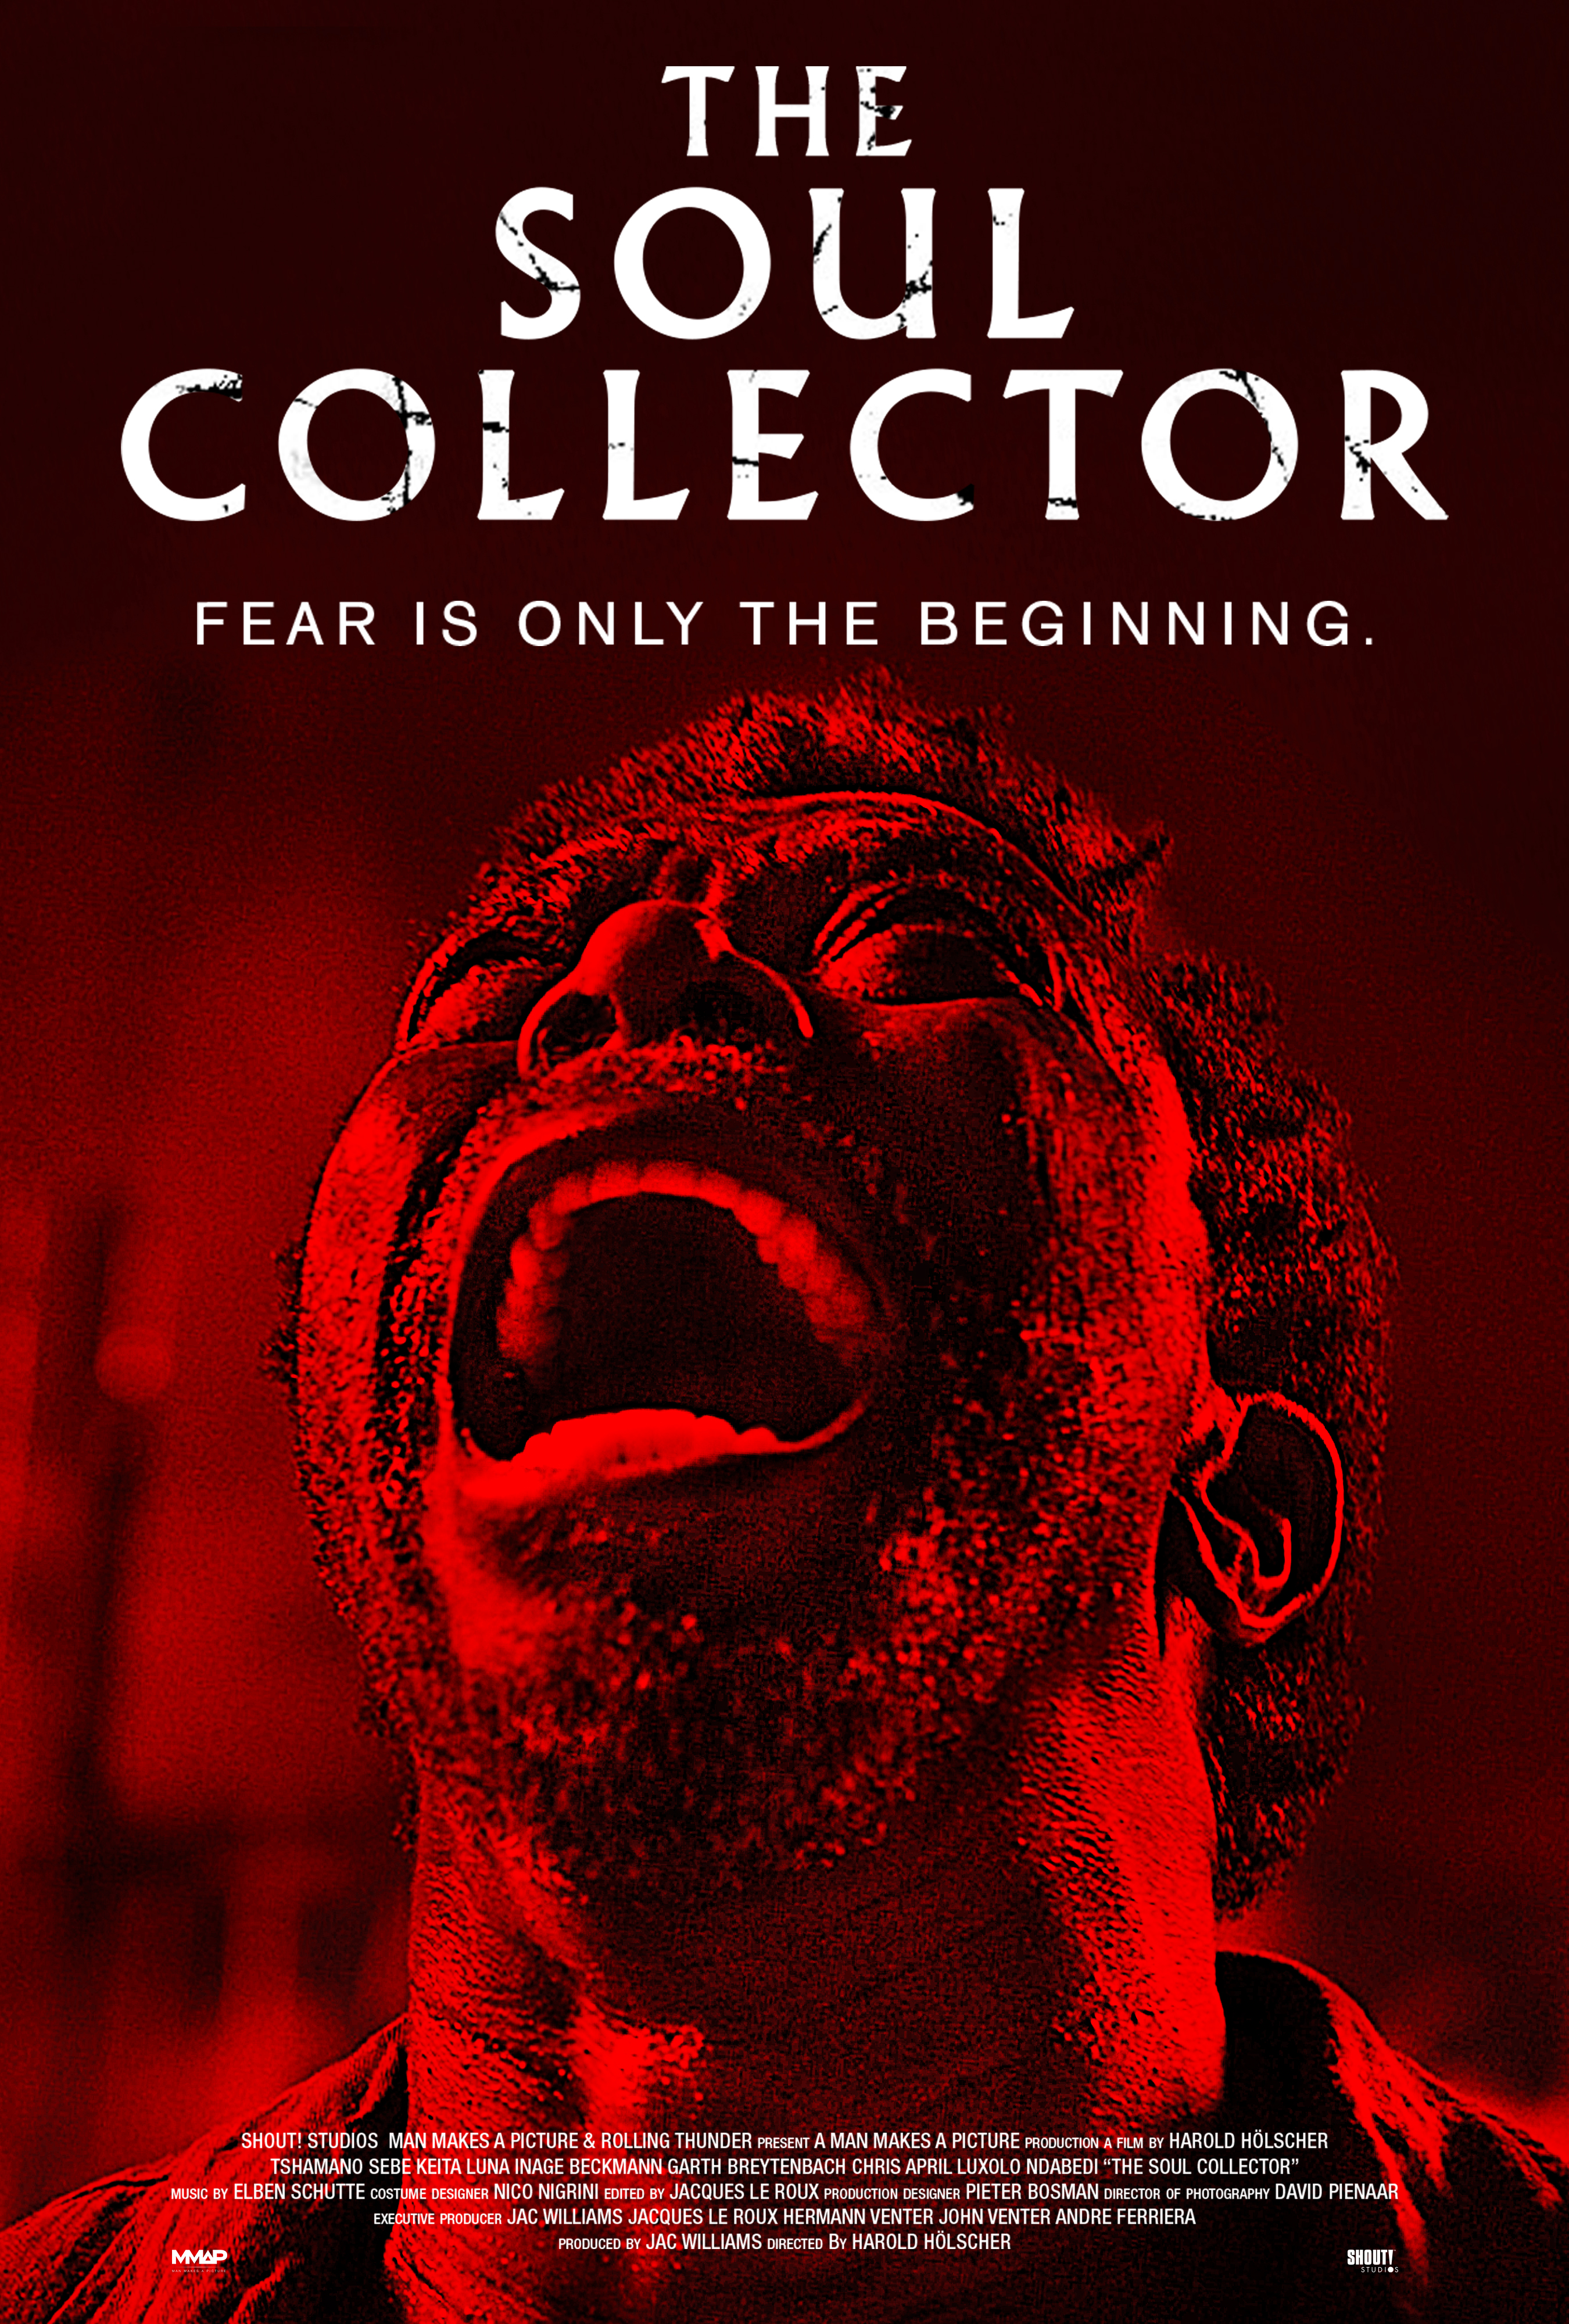 8(THE SOUL COLLECTOR)